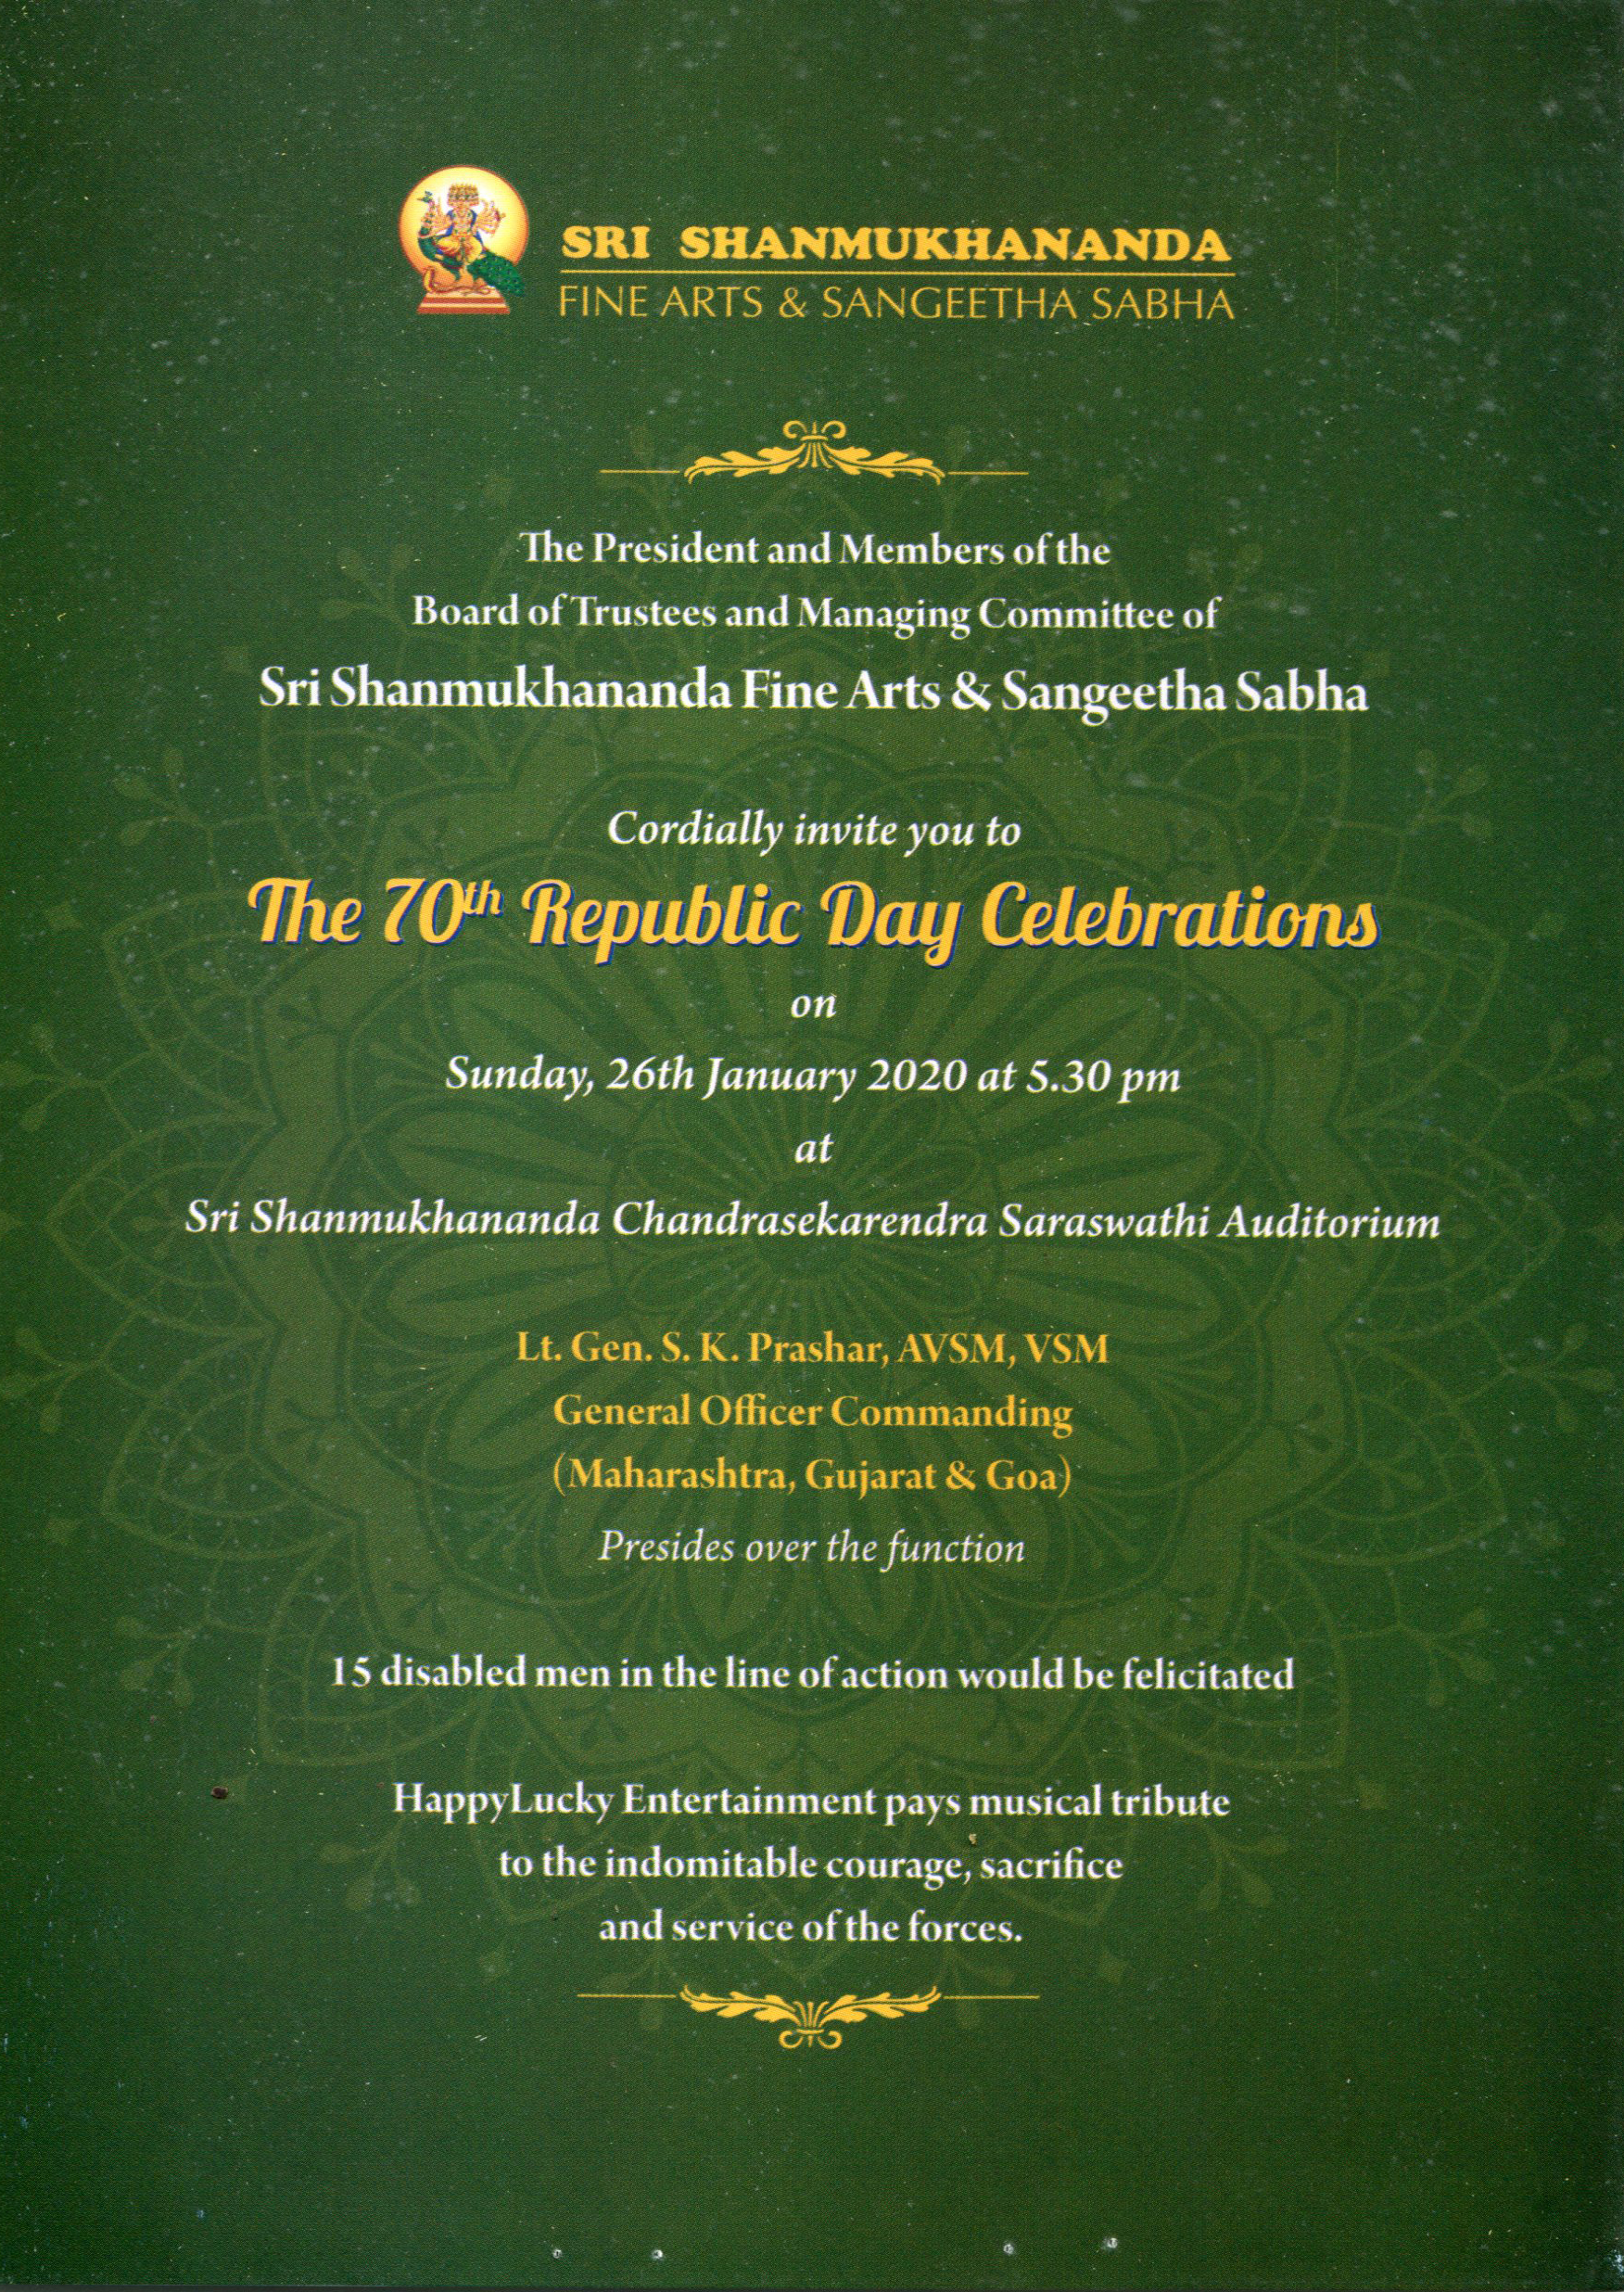 The 70th Republic Day Celebrations